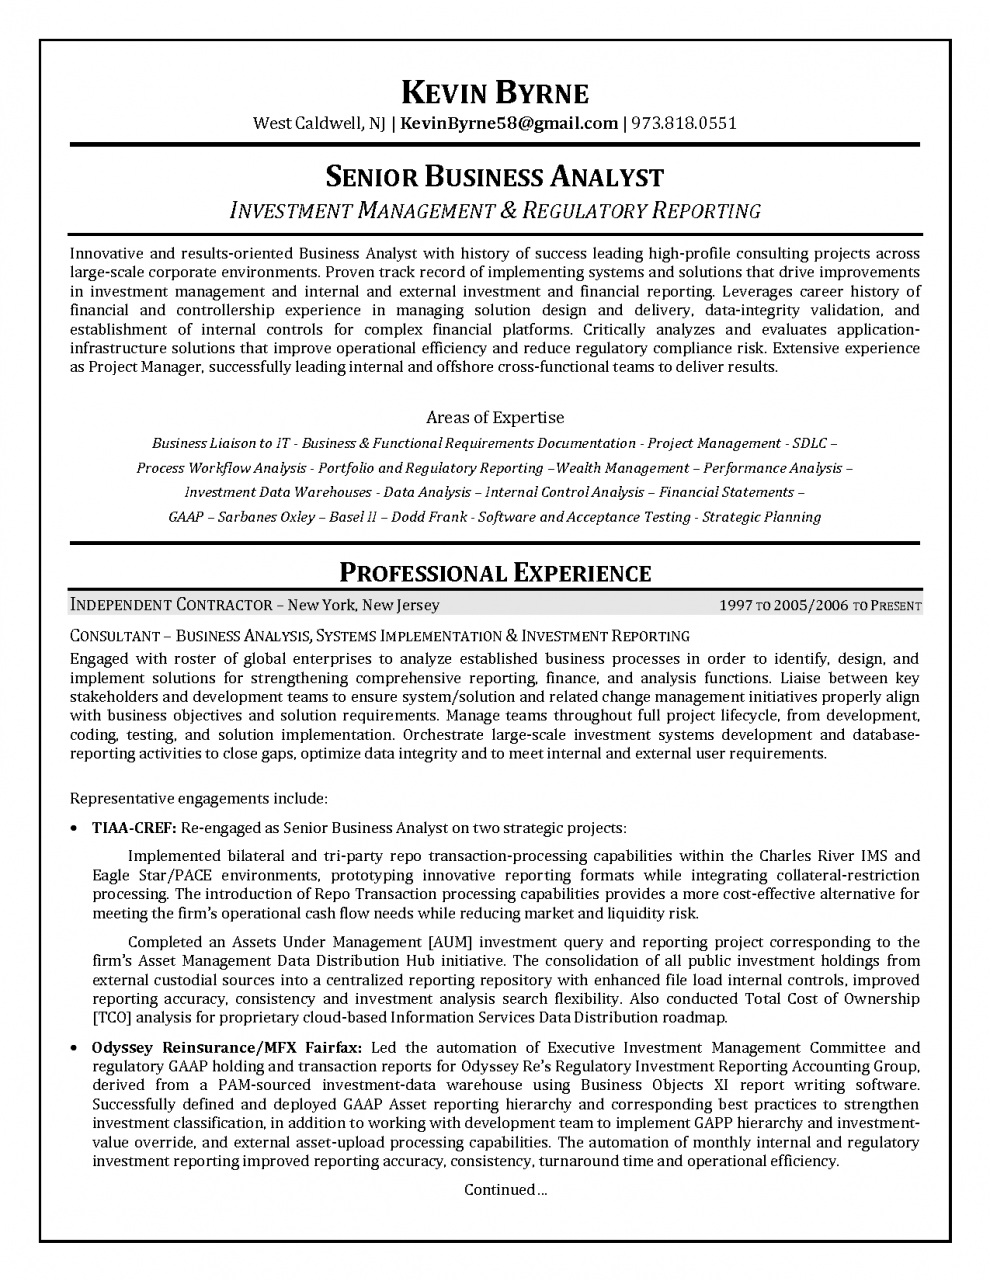 resume  senior business analyst resume format business analyst senior resume workbloom 135933271